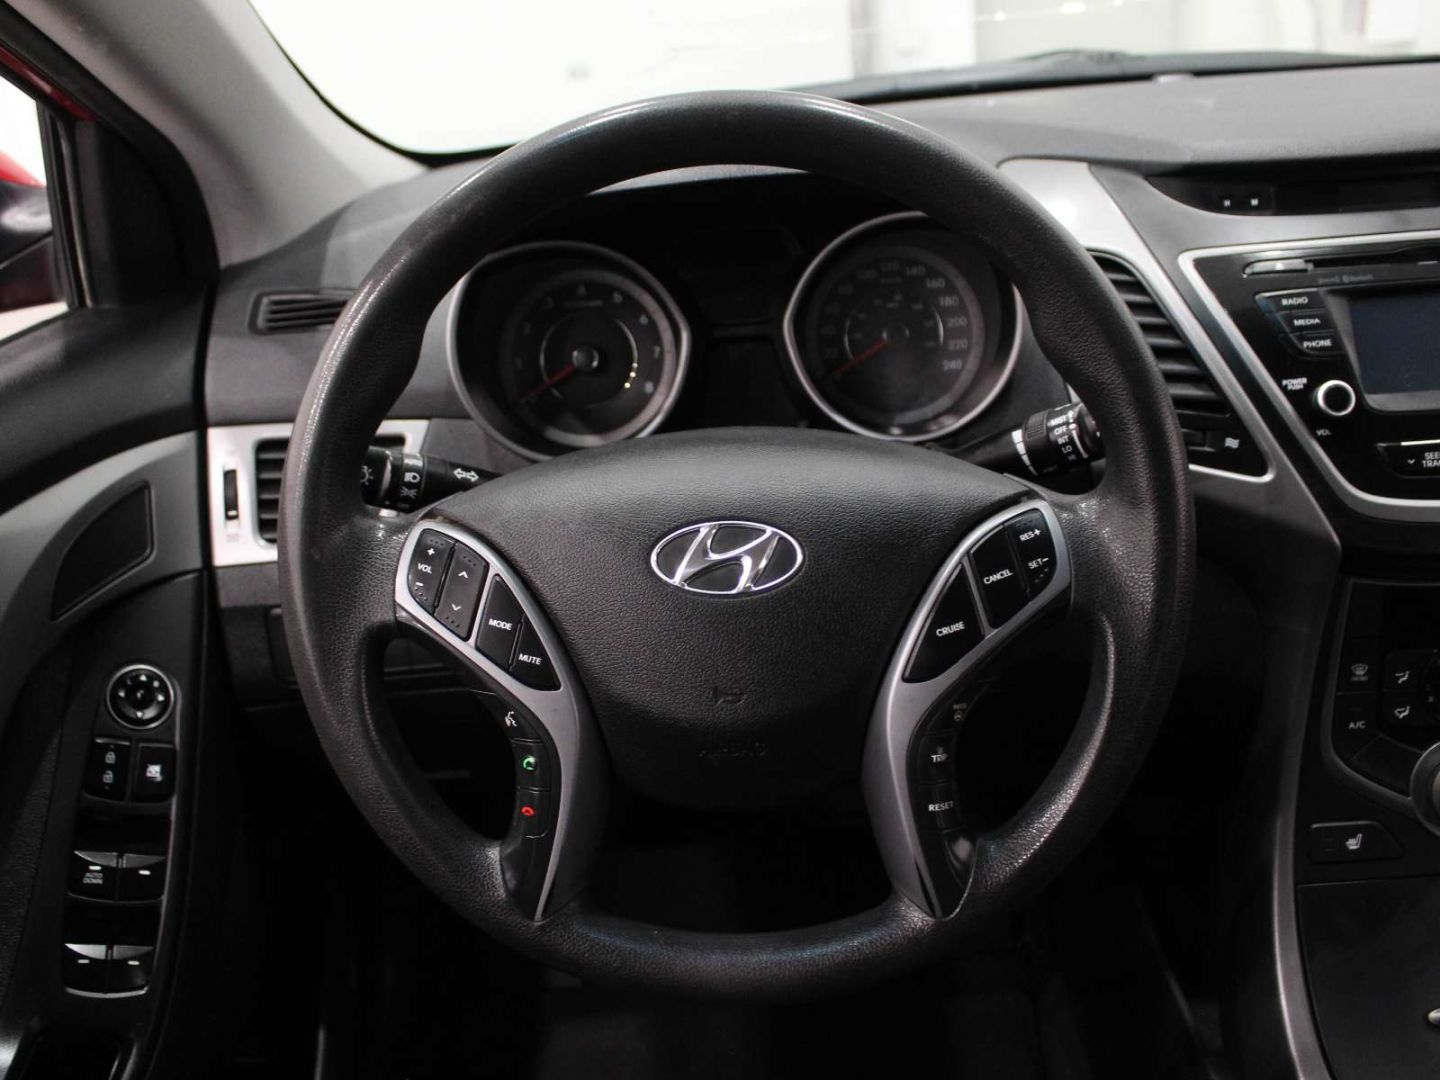 2016 Hyundai Elantra Sport Appearance for sale in Edmonton, Alberta